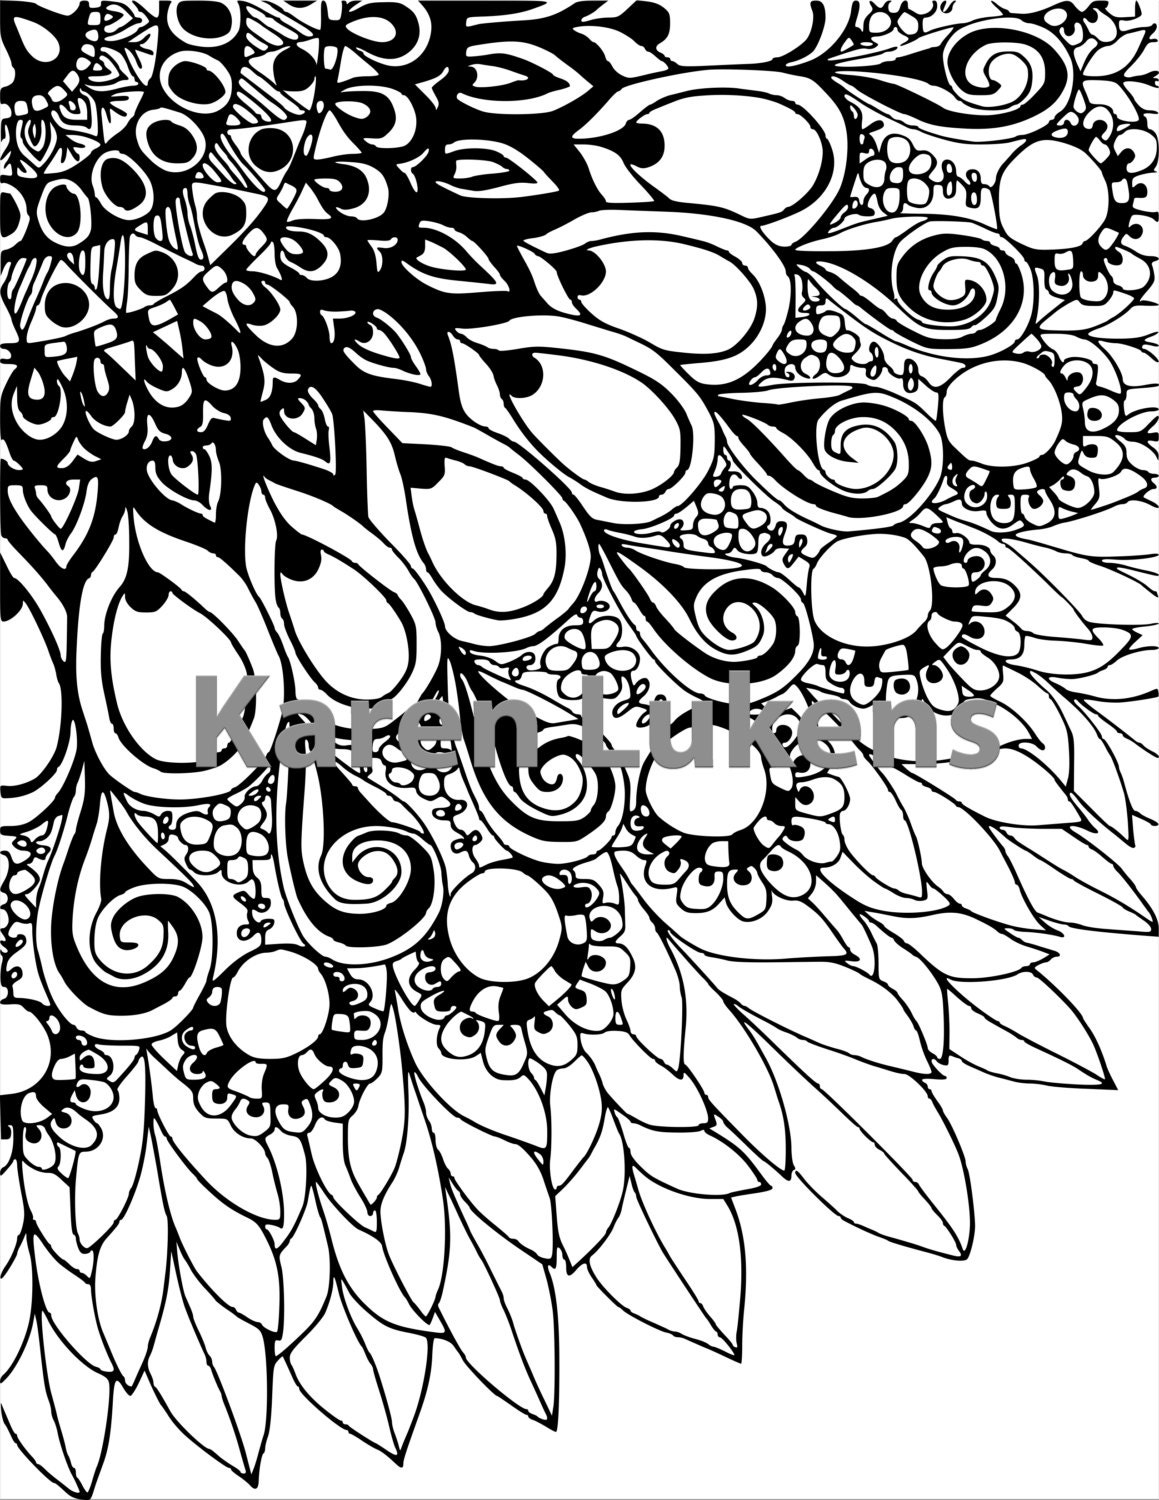 Coloring book download zip - 5 Pages Mandalas Pack 1 5 Adult Coloring Book Pages Printable Instant Download